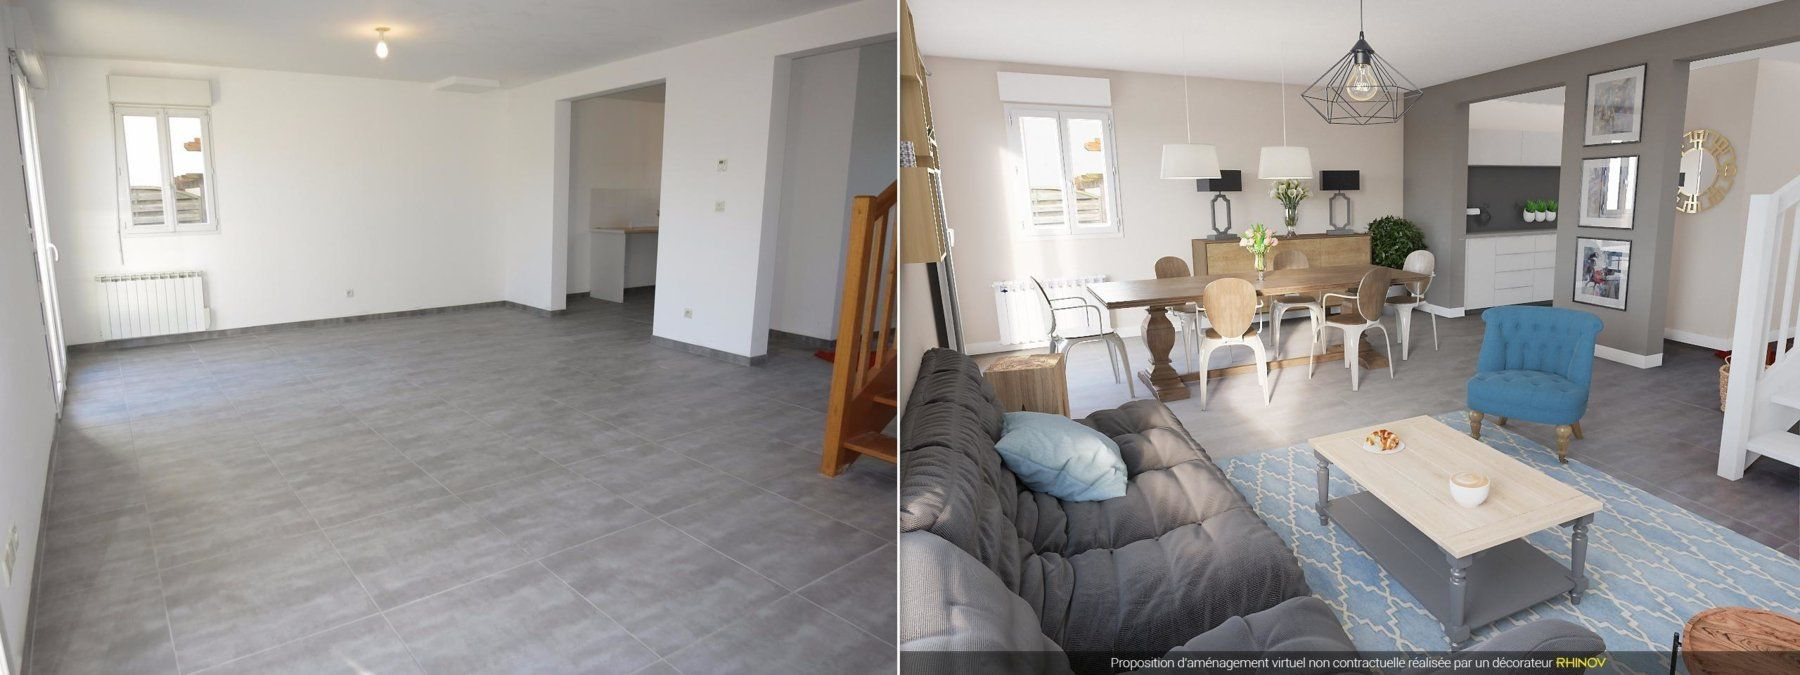 Agence Immobilière Home Staging le home staging virtuel et ses miracles    orpi foucard